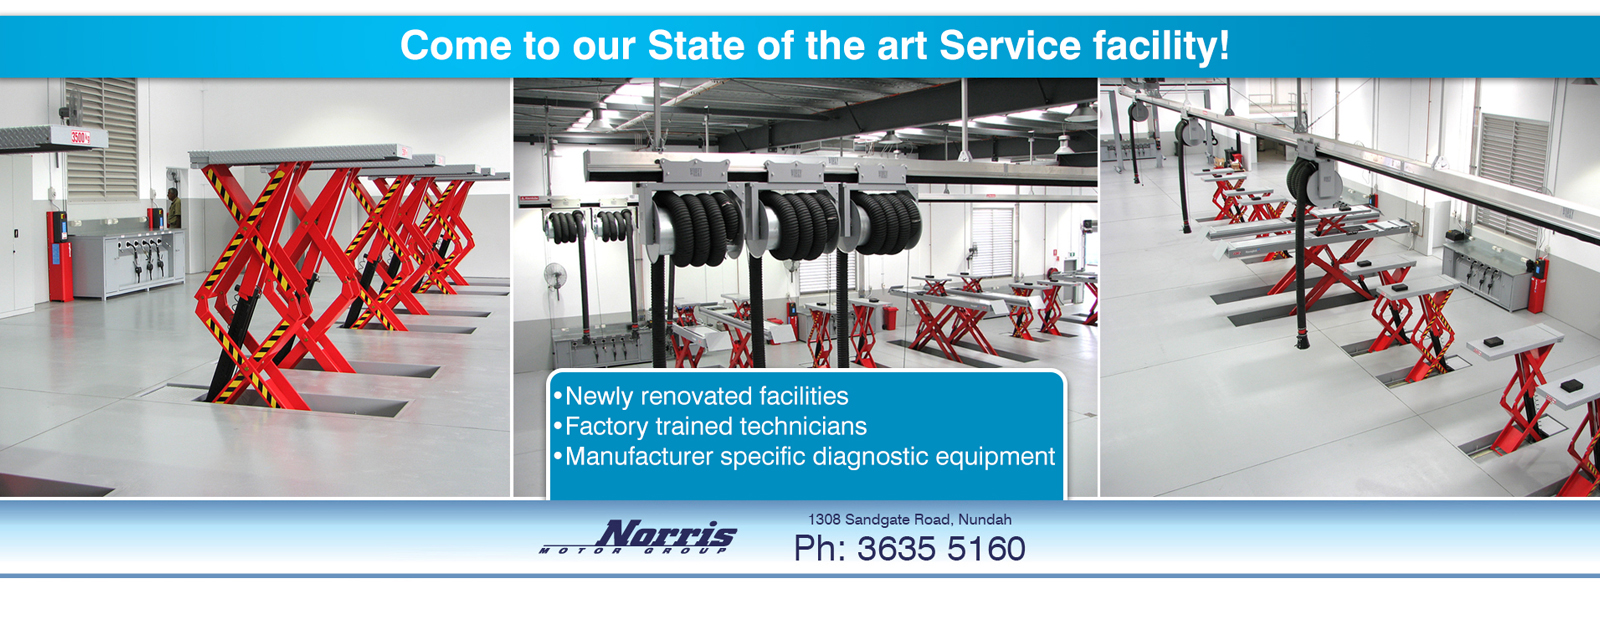 Come to our state of the art service facility at Nundah Isuzu UTE Brisbane.